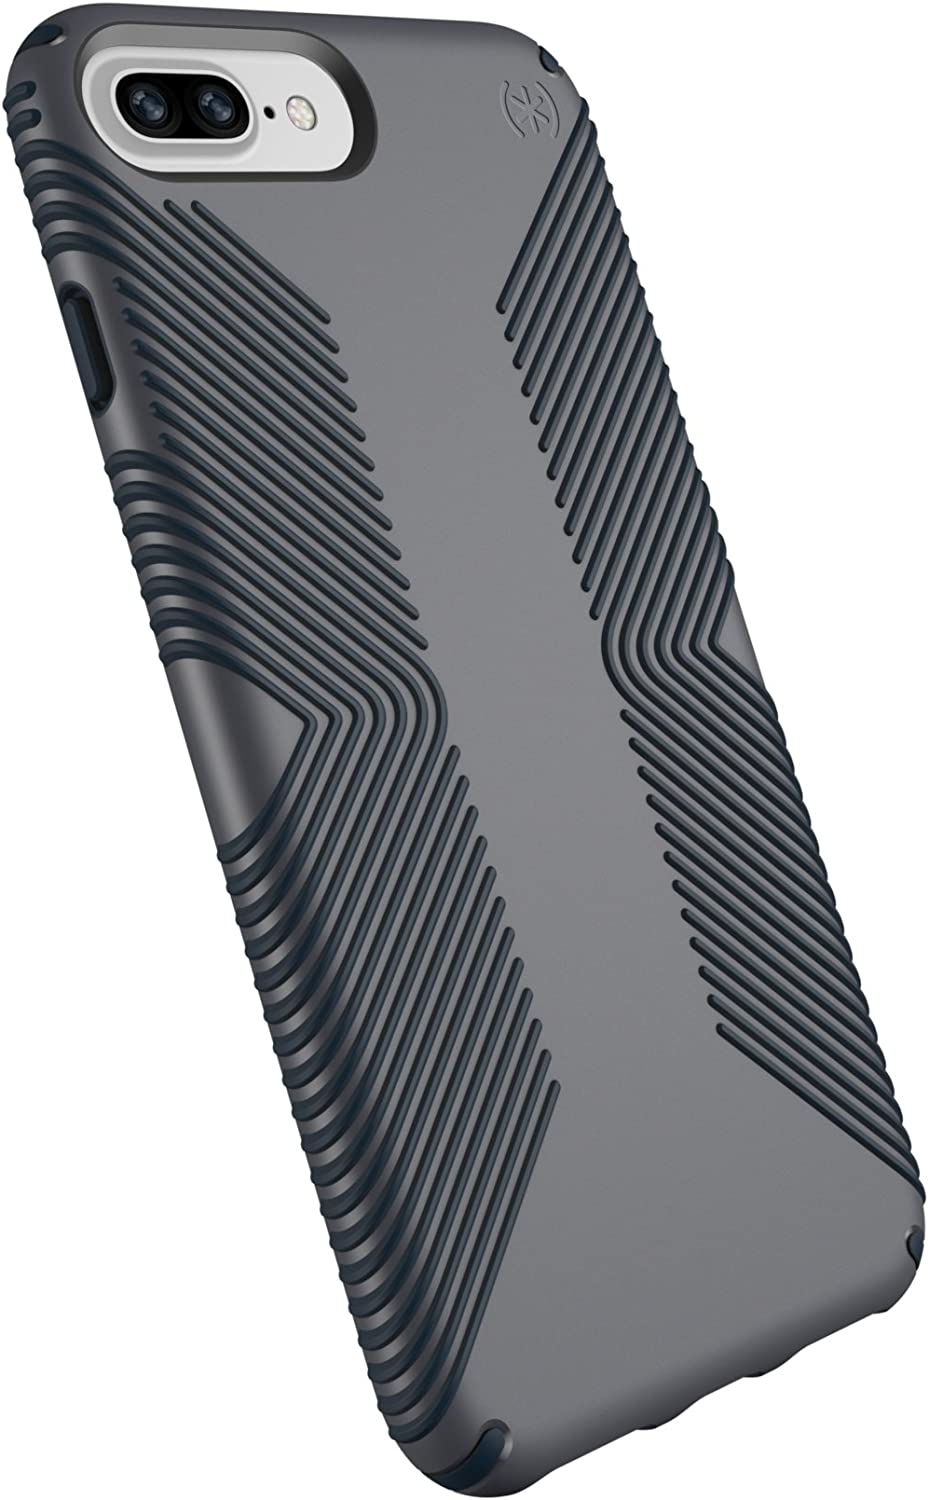 Speck Products Presidio Grip Case for iPhone 8 Plus (Also fits 7 Plus and 6S Plus/6 Plus), Graphite Grey/Charcoal Grey